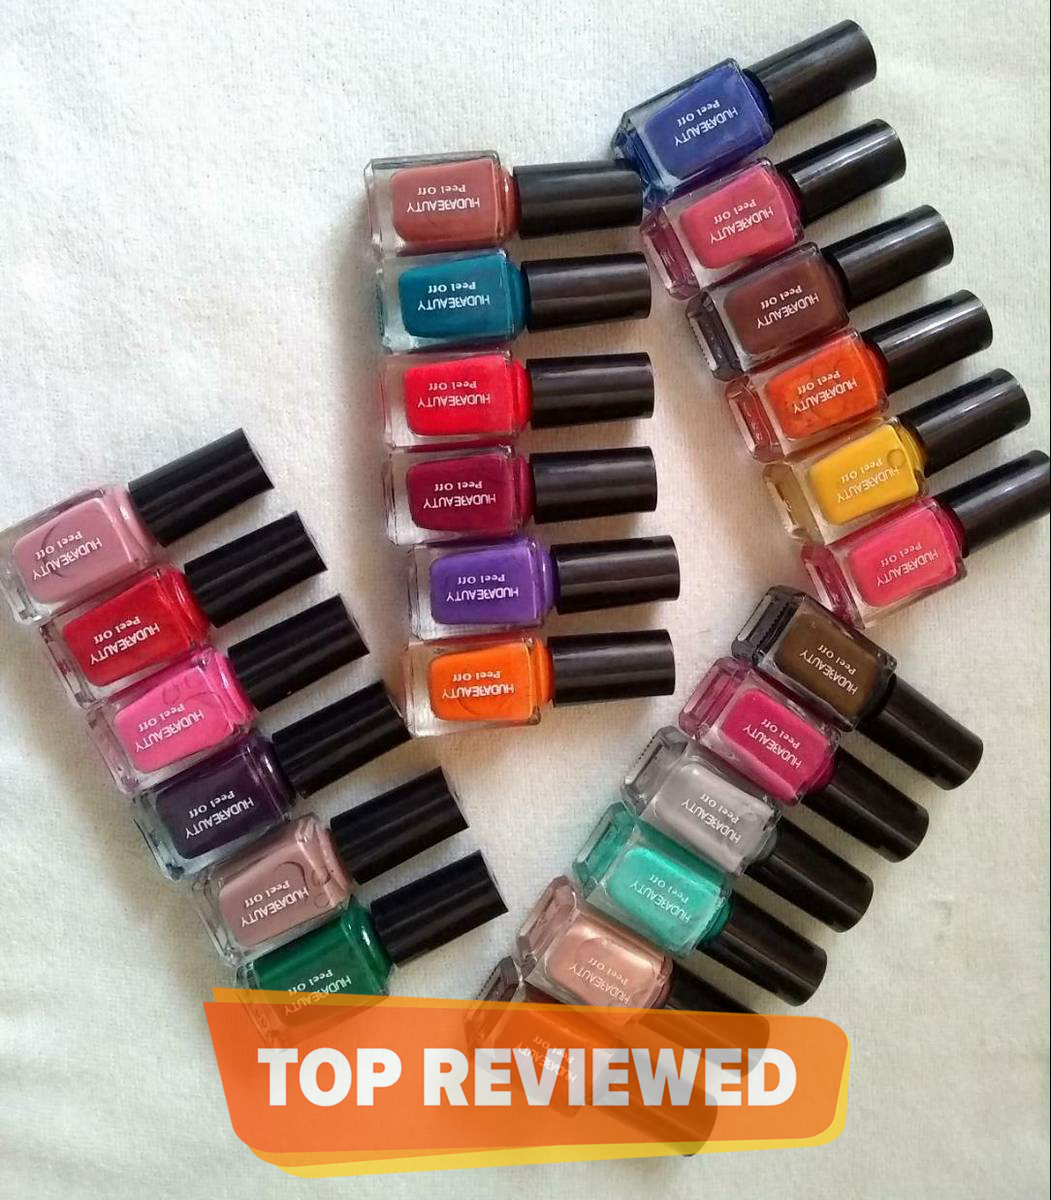 High Quality Pack of 6 Peel Off Nail Polish - Multicolor | For women | Girls | Easy to Use